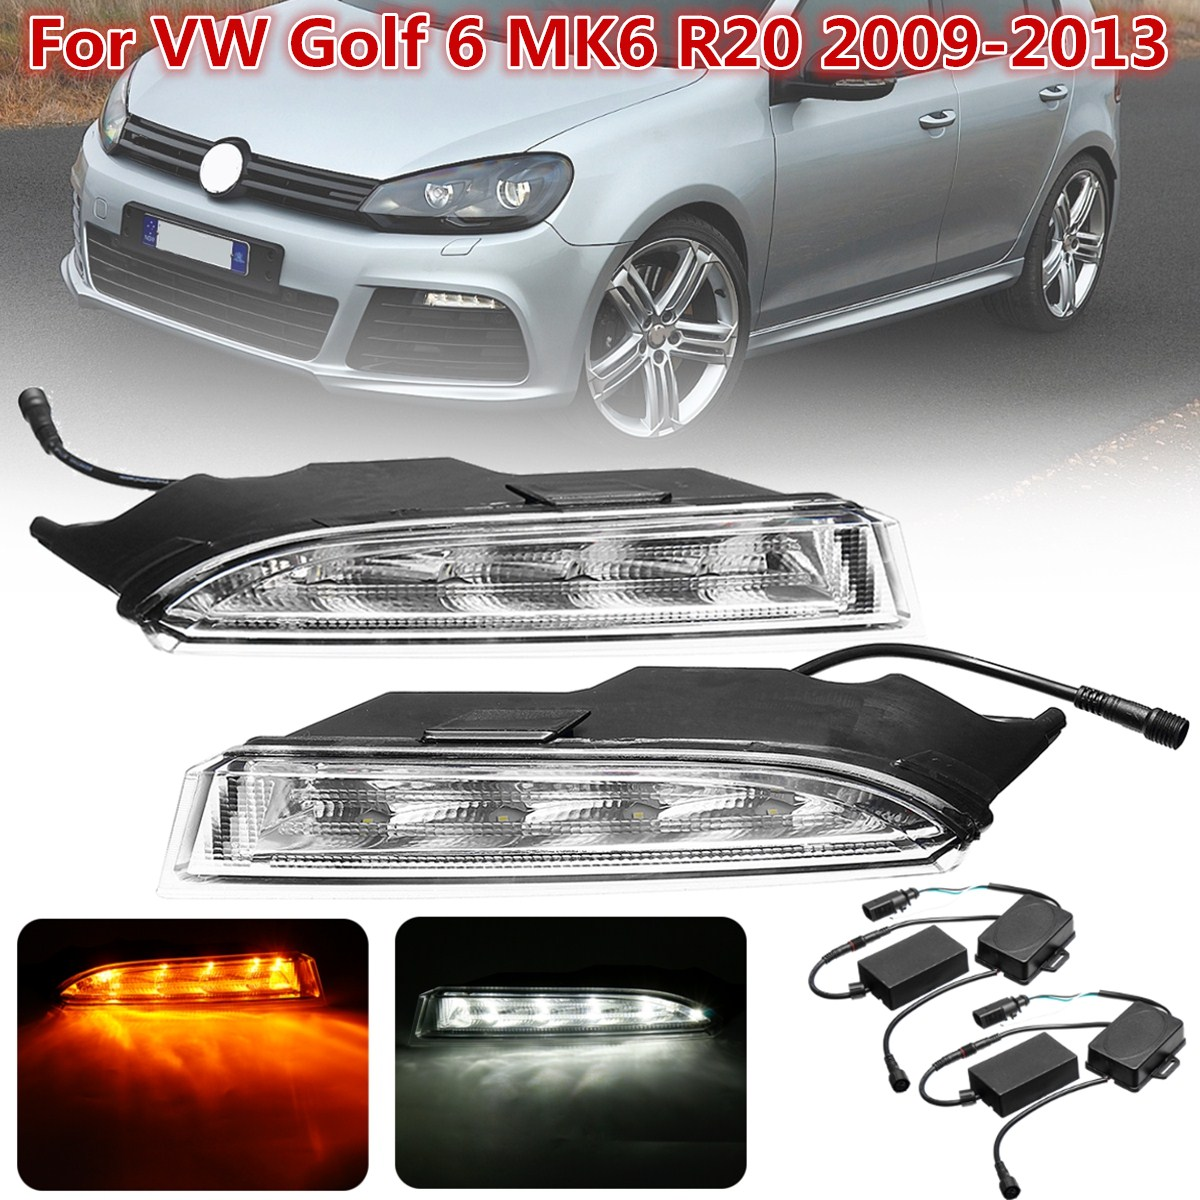 1 Pair Led Car-Styling Day Daytime Running Light Fog Light Lamp bumper lamp LED DRL For VW Golf 6 MK6 R20 2009 2010 2011~2013 new 2017 women swimsuit solid push up skirted bathing suit padded one piece beach dress sexy ladies swimwear